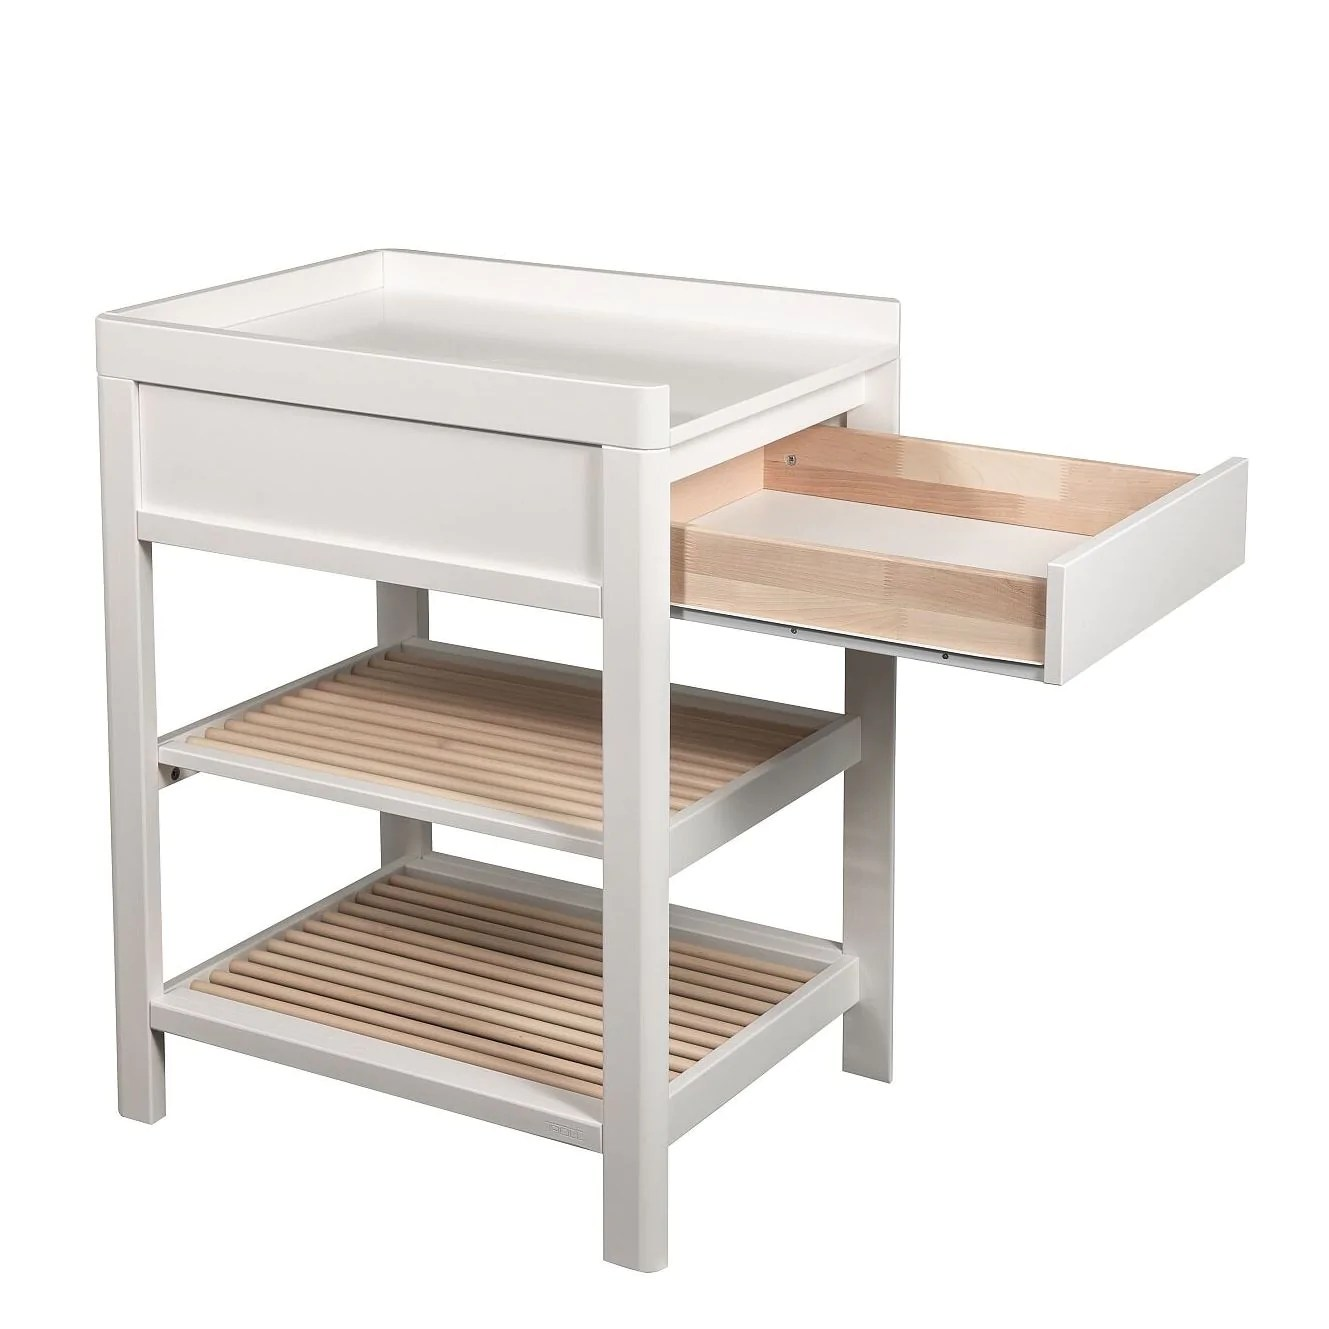 Troll Lukas Cot And Change Table Package White And Whitewash The Baby Closet